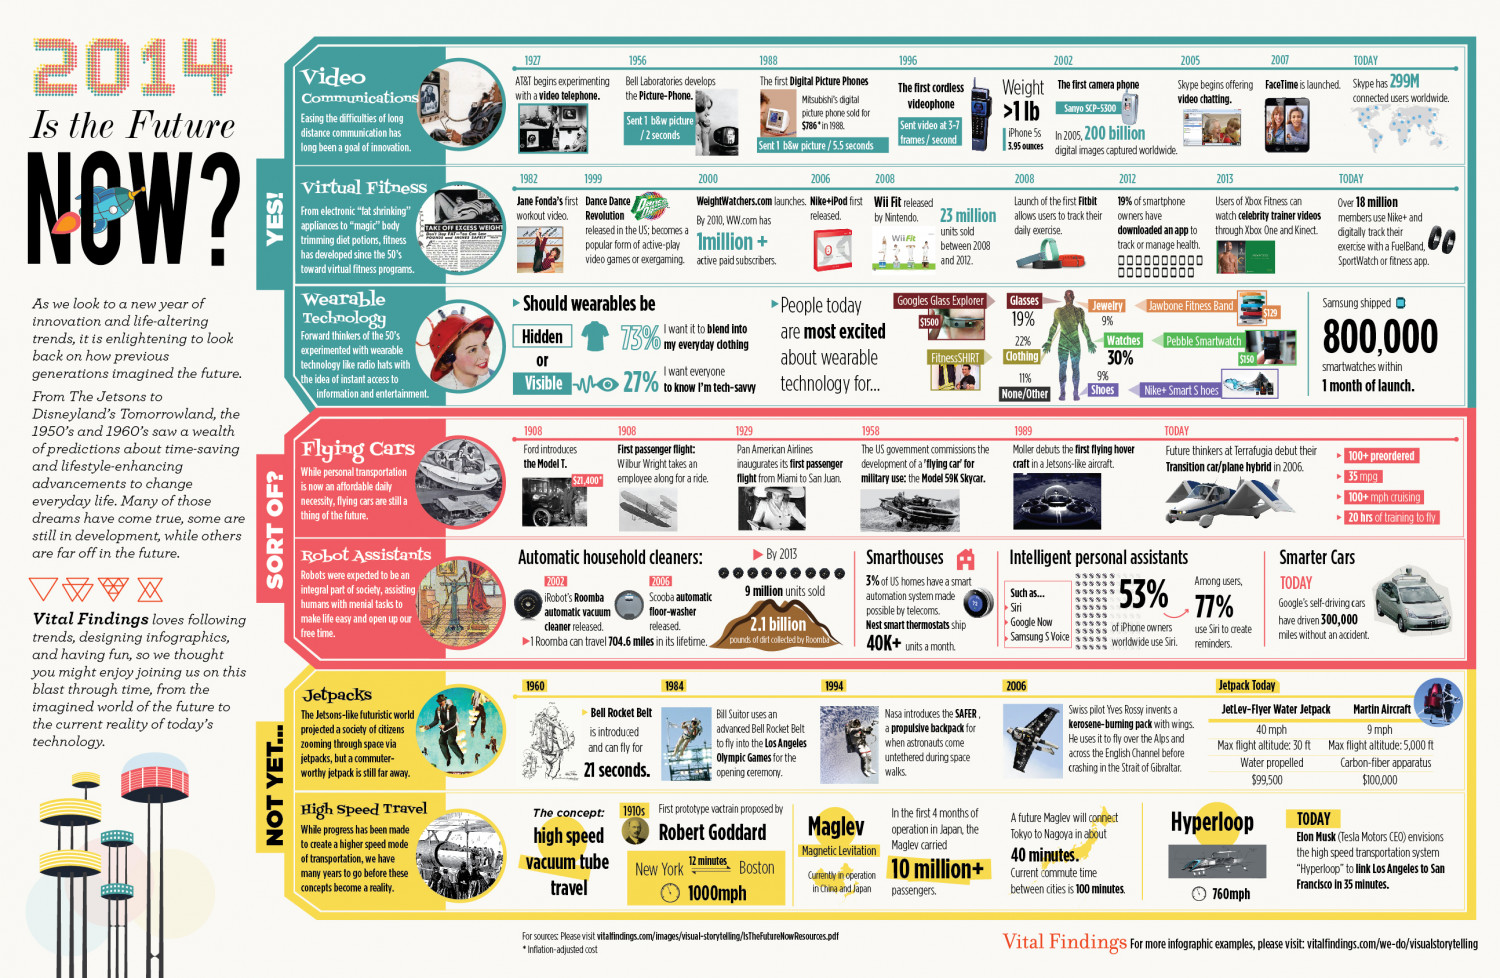 2014 Is the Future Now? Infographic